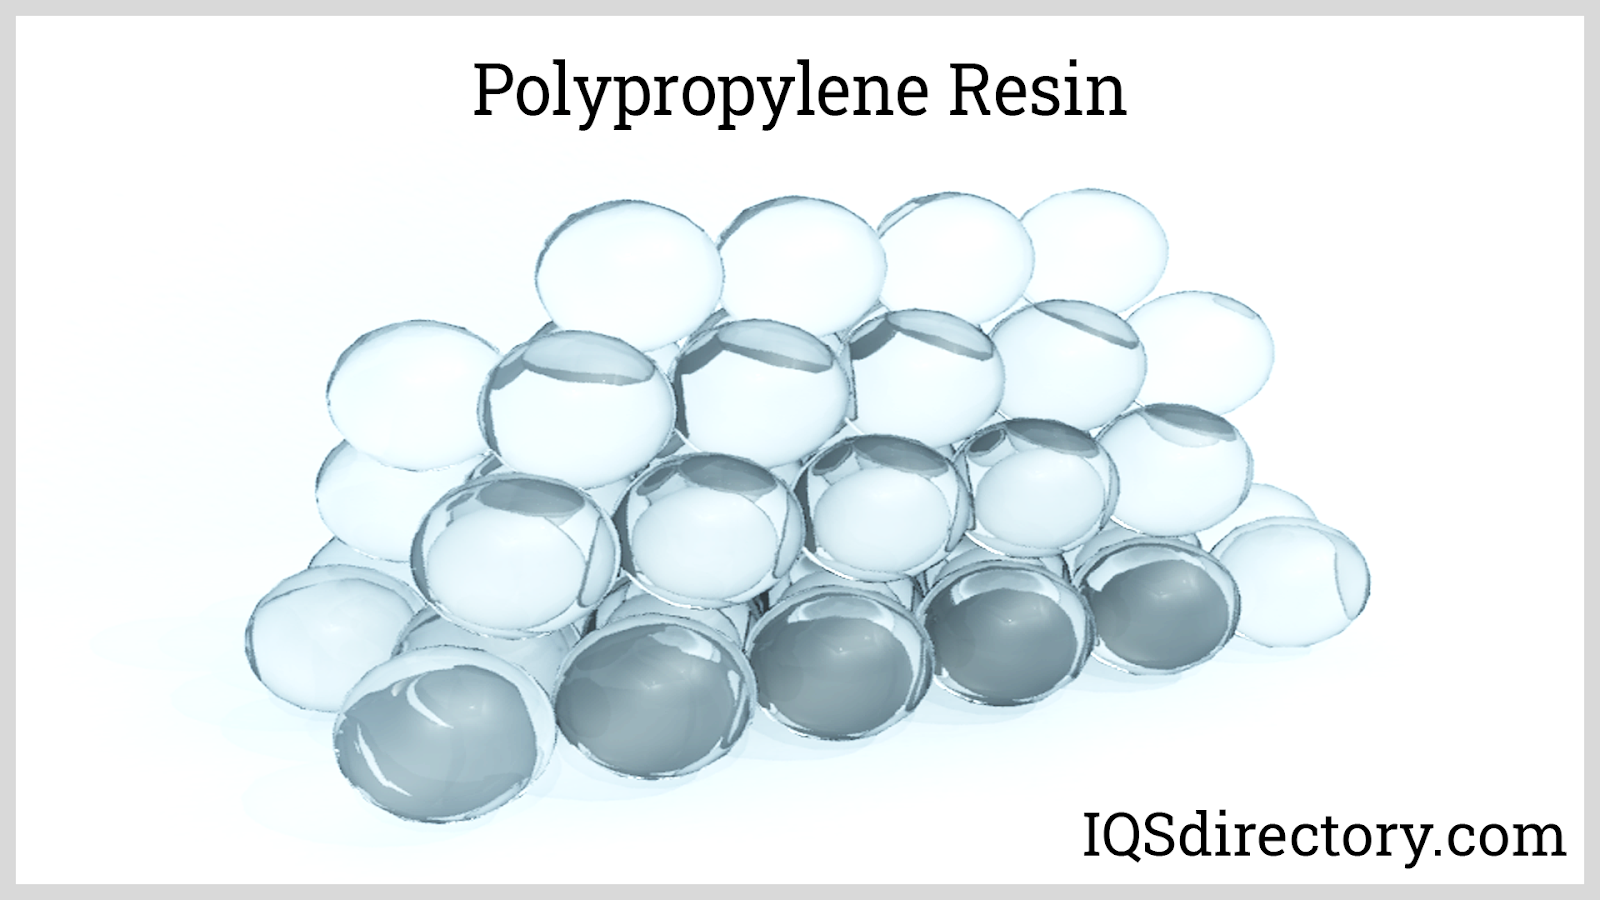 Polypropylene Resin